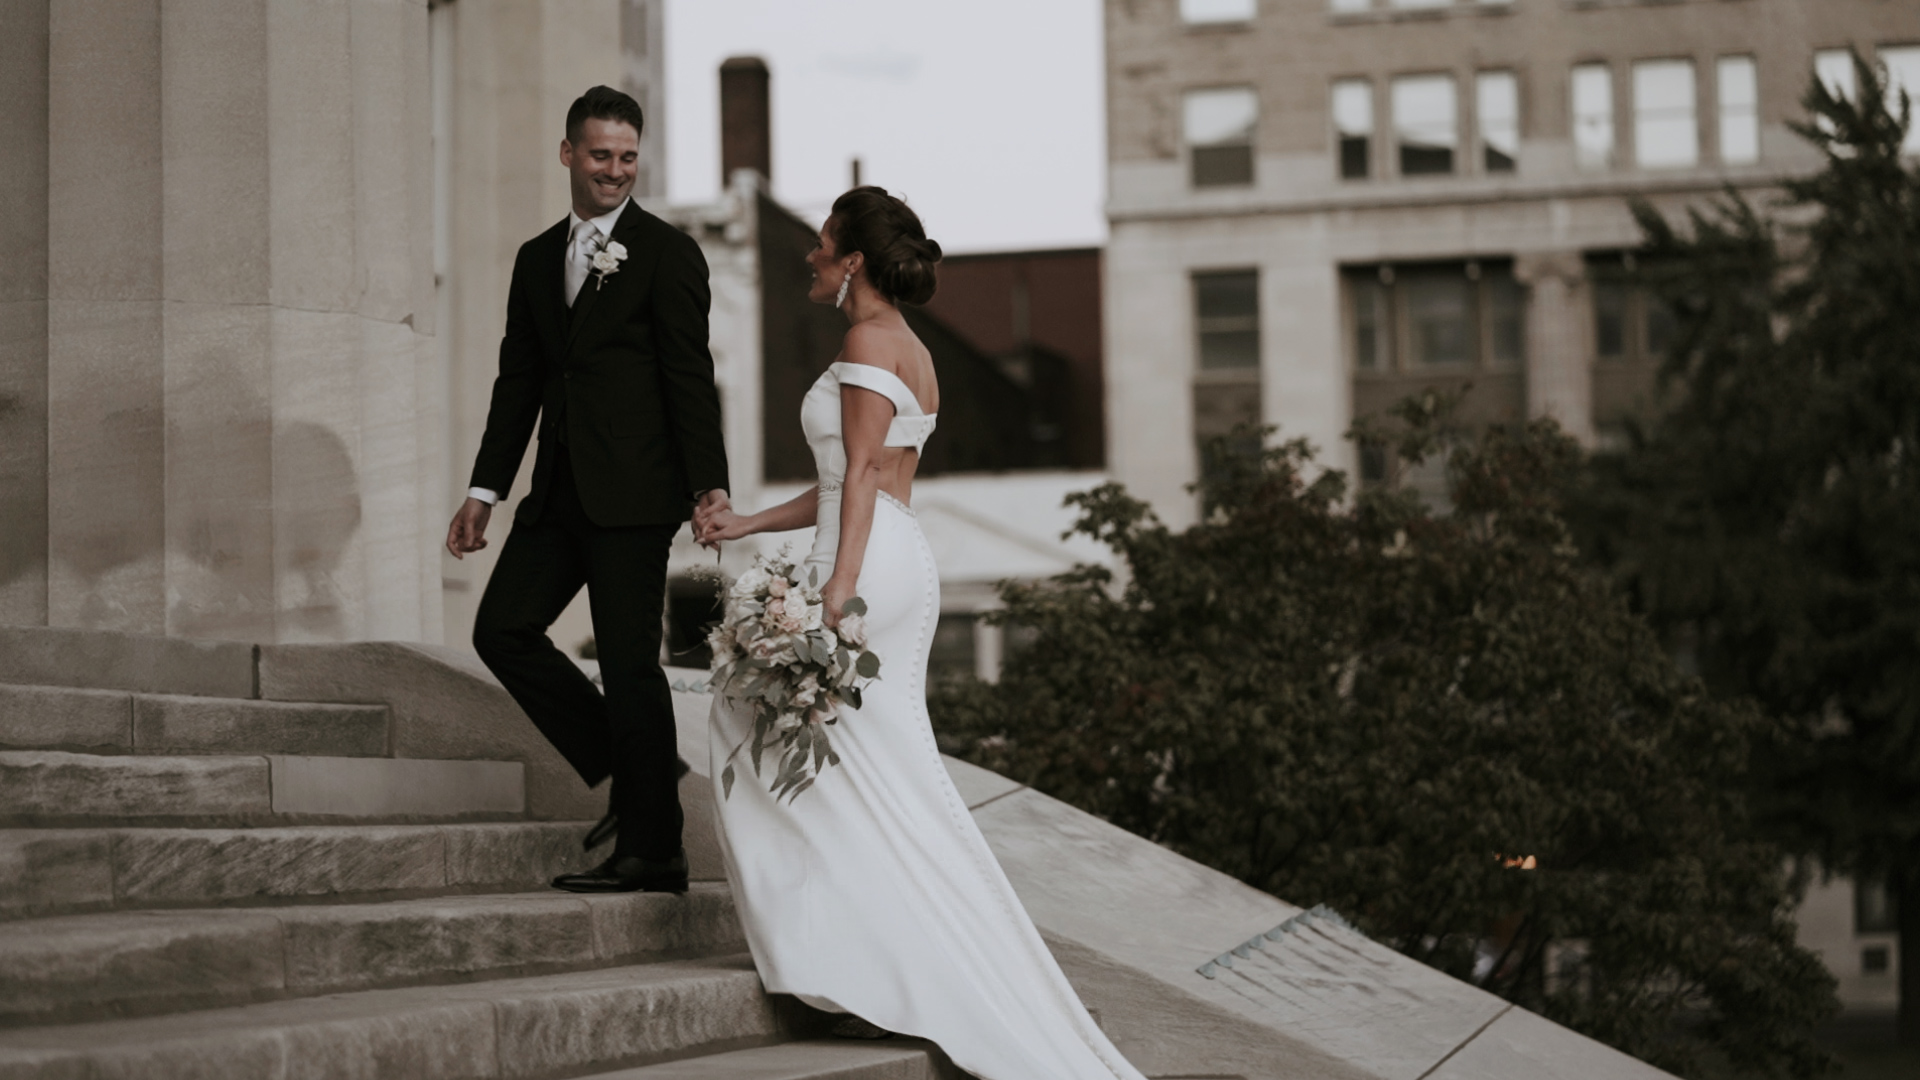 Michelle + Brett | Louisville, Kentucky | Gillespie